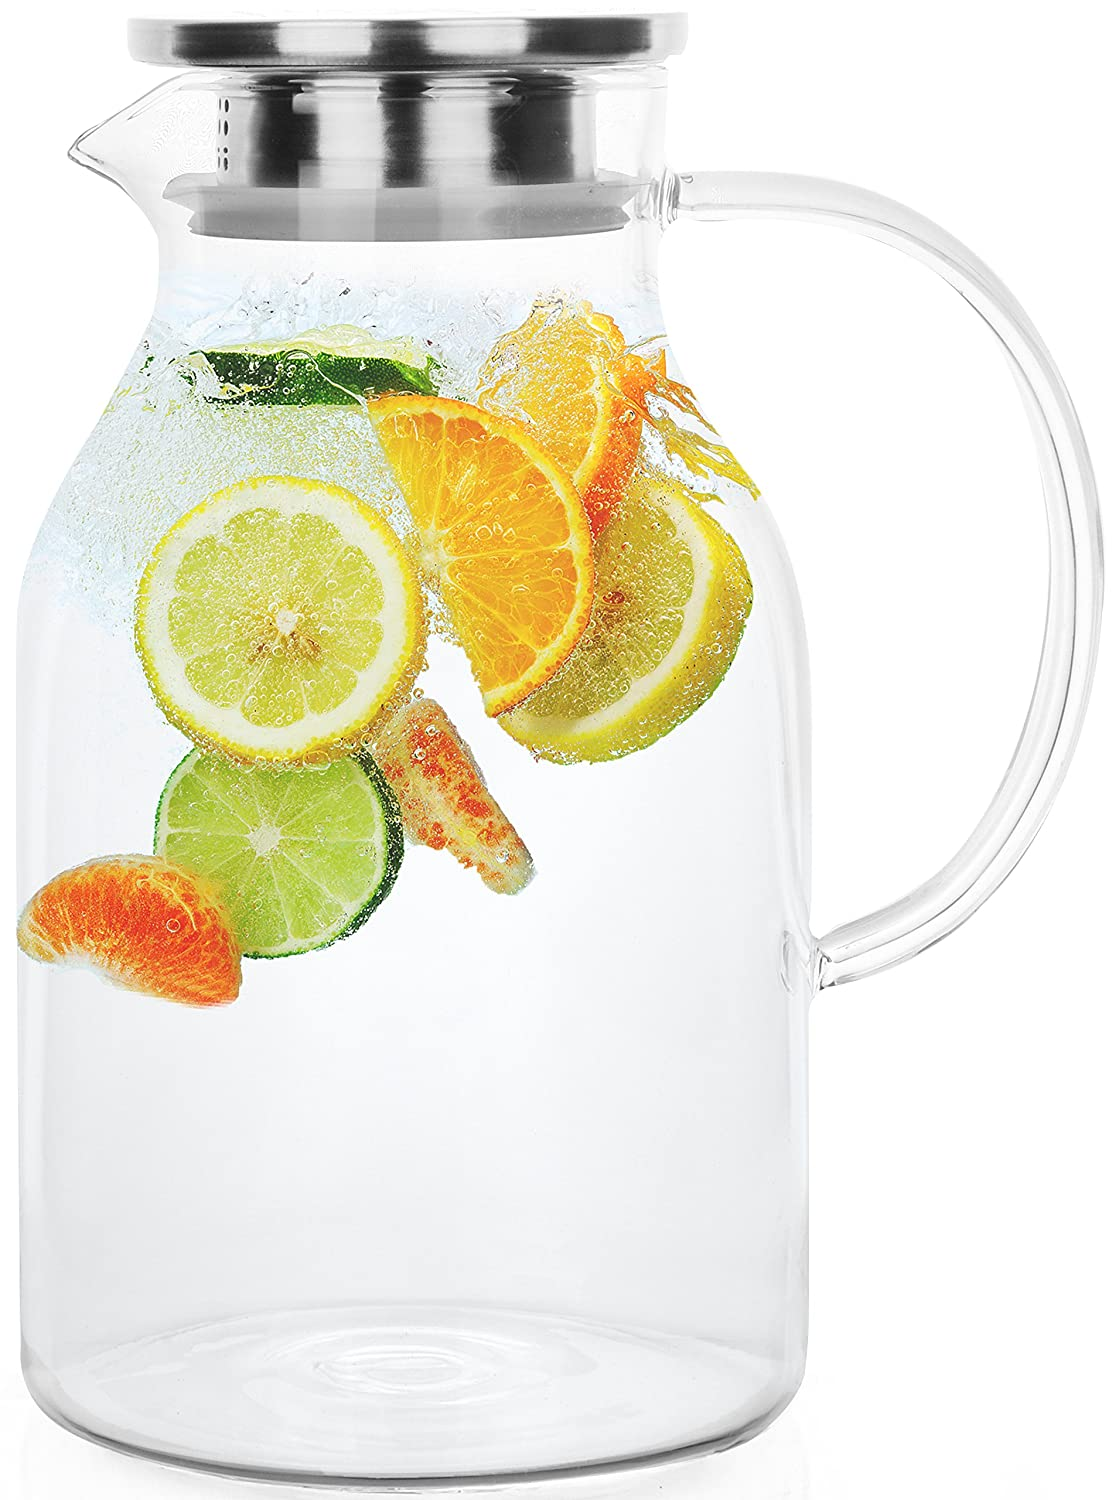 Glass Pitcher with Lid by Golden Spoon: Durable 68oz Glass Carafe with Airtight Cap - MicrowavFreezer Safe Borosilicate Glass for Hot and Cold Liquids - Comes with 2 Stirrers and A Strainer (68 oz)